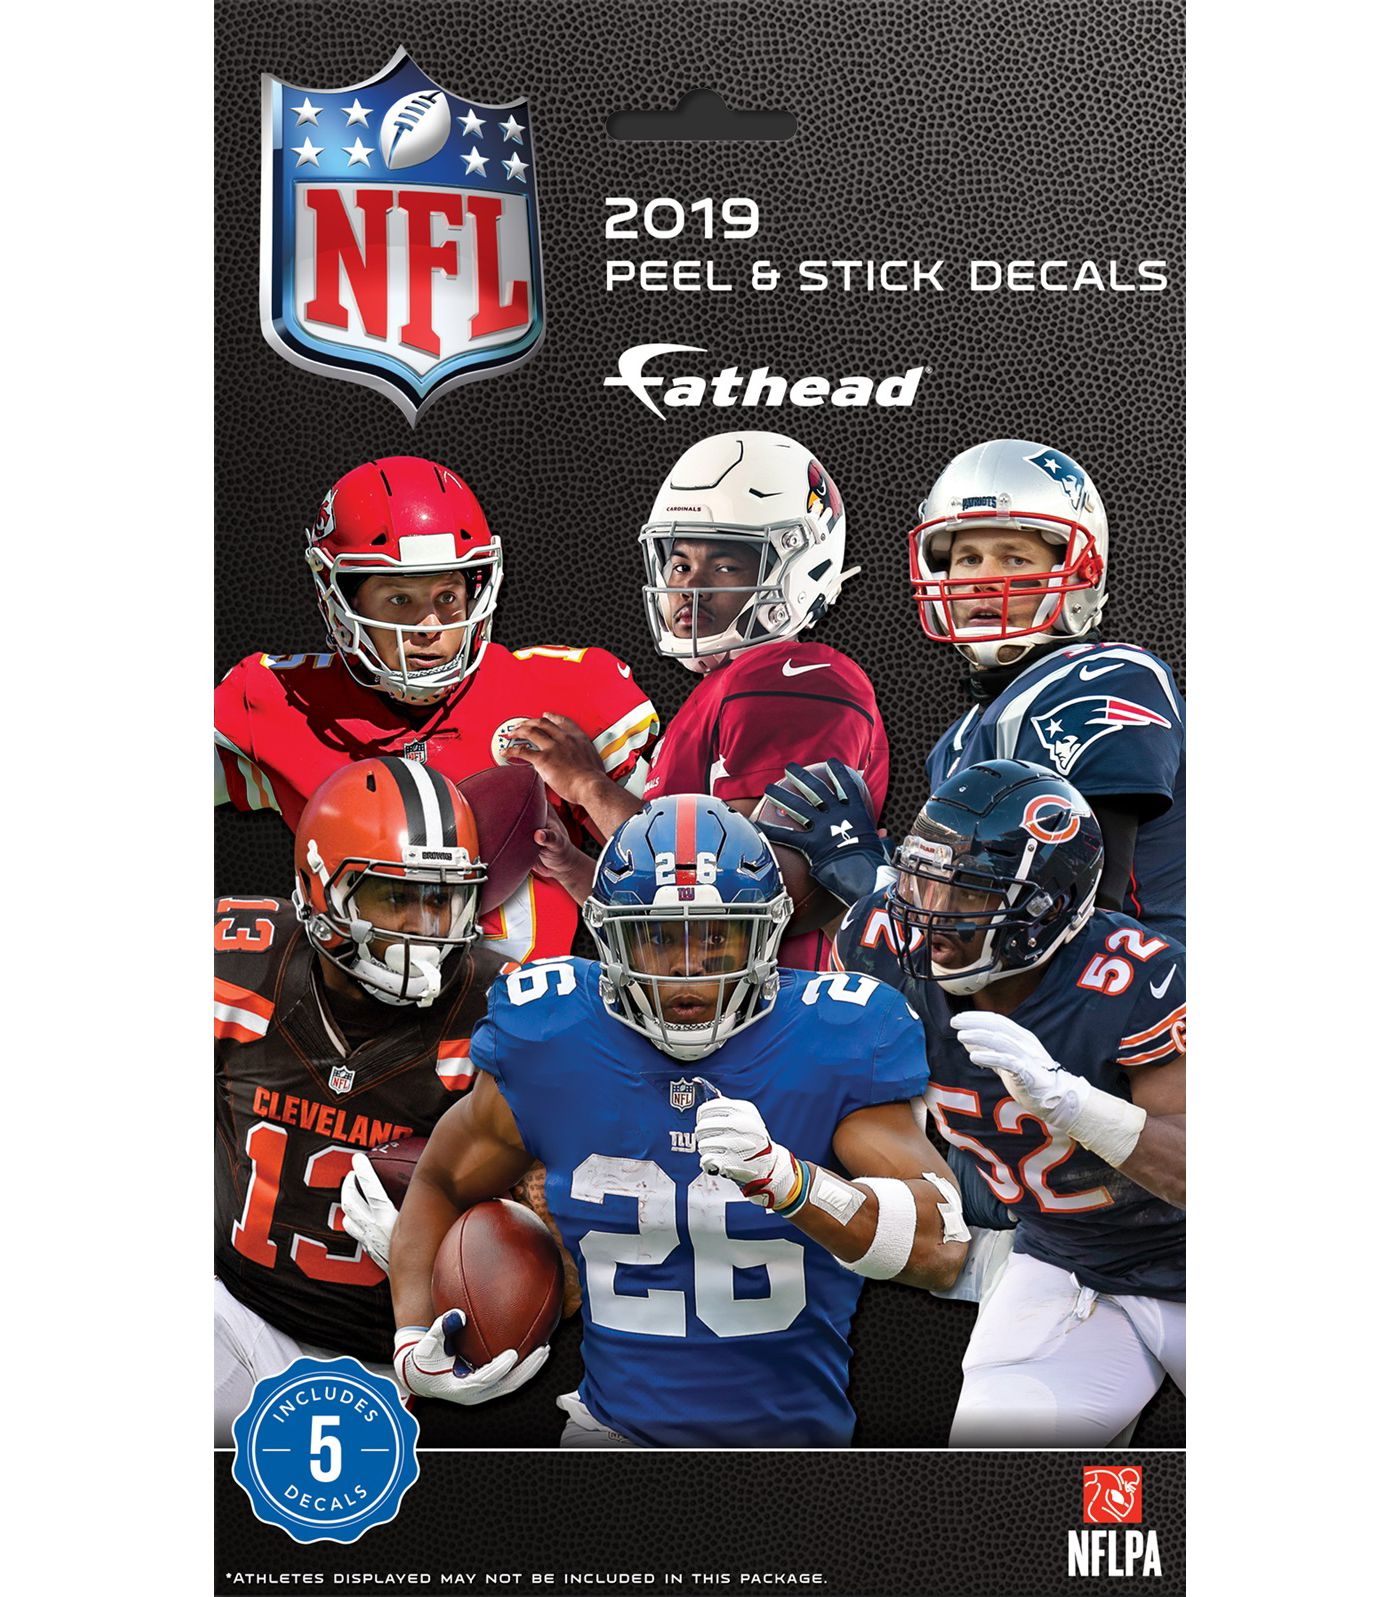 Fathead NFL League Wall Decal Pack